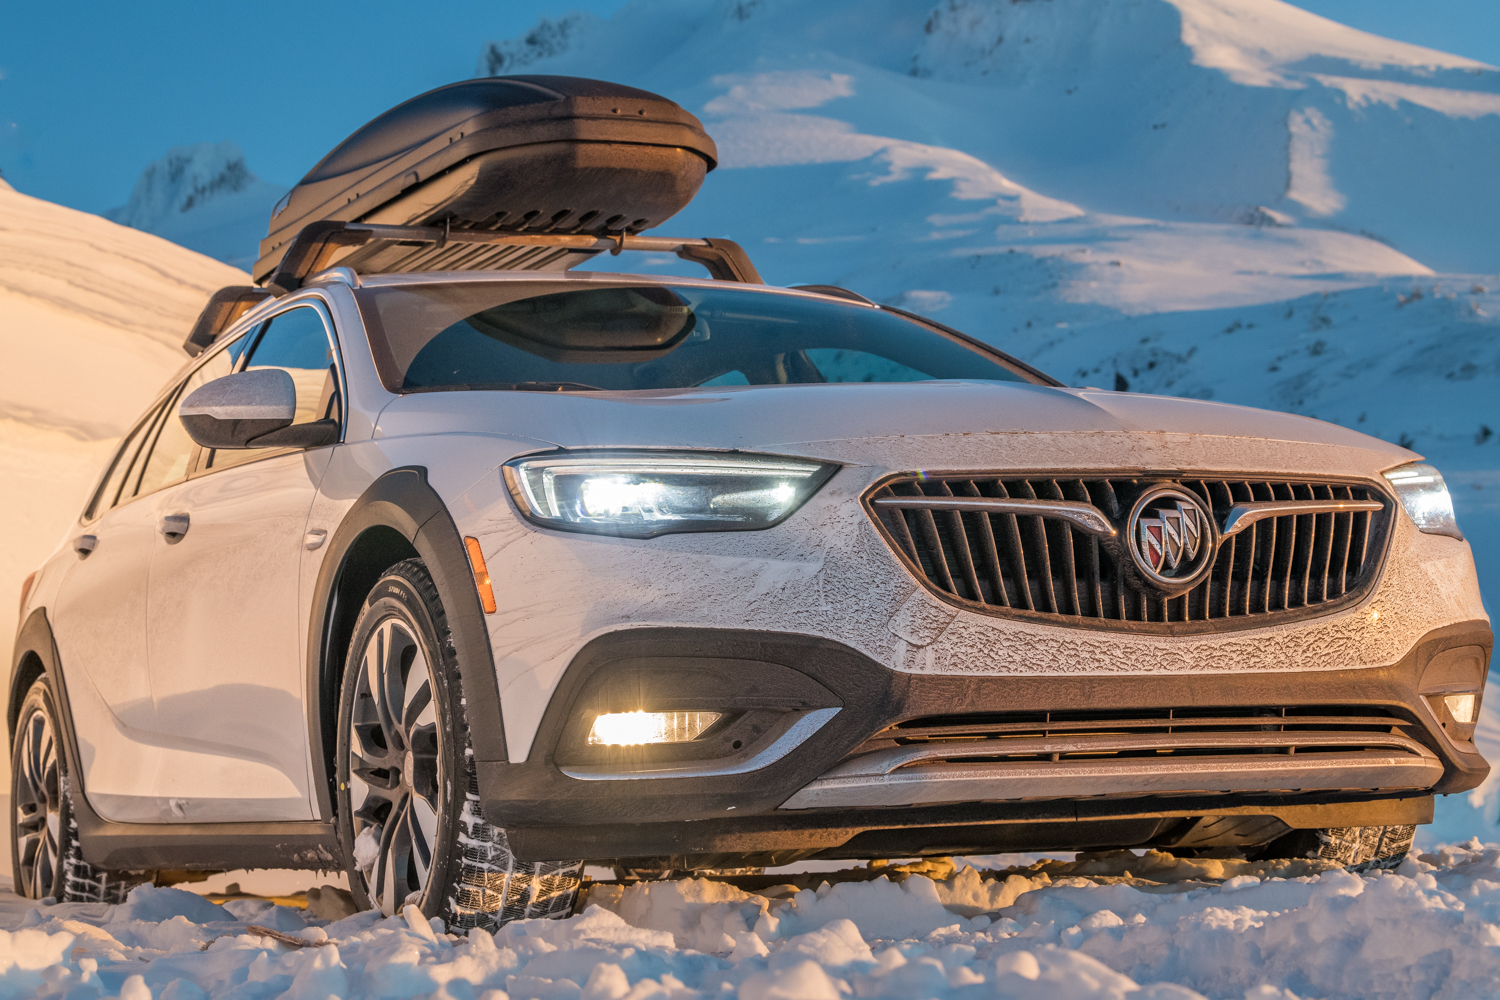 2018 Buick Regal Tourx Review King Of The Mountain Town Gearjunkie